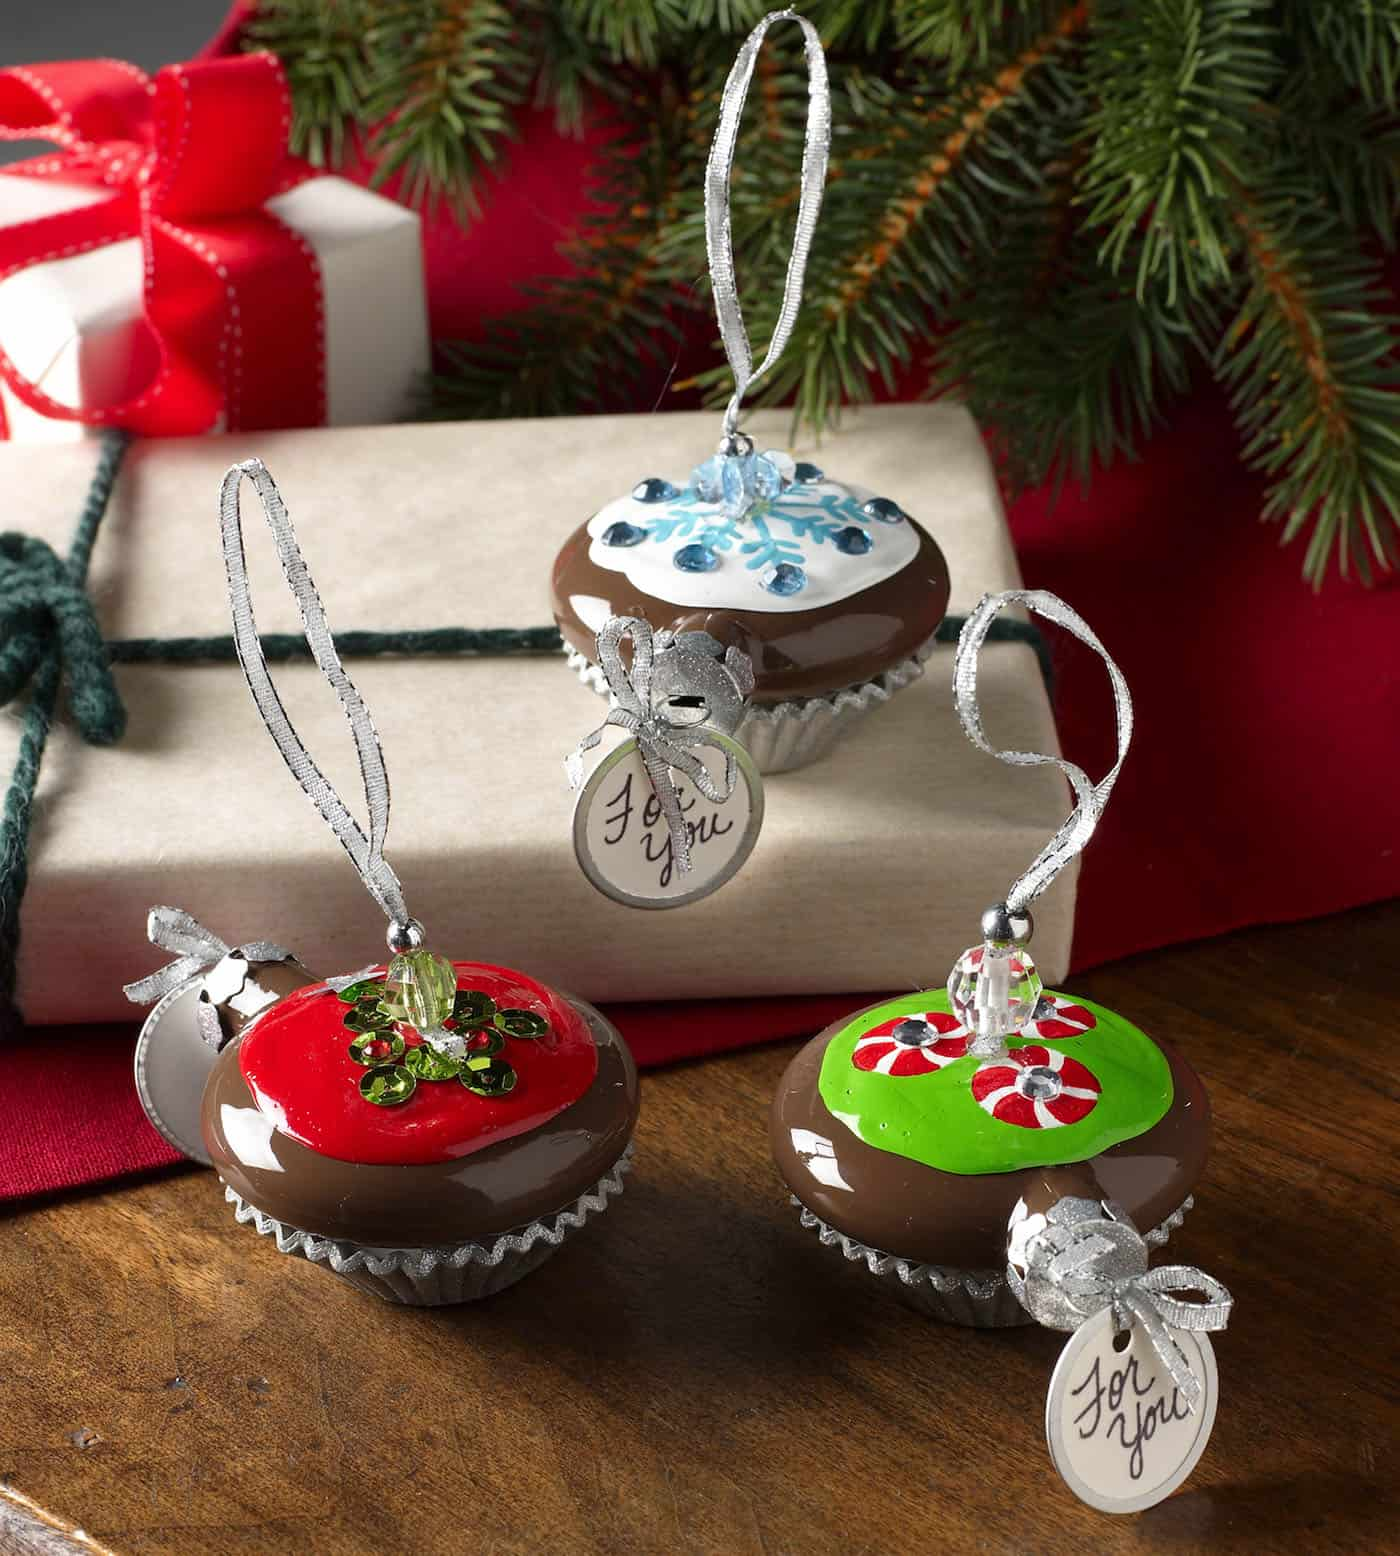 These handmade Christmas ornaments are regular ornaments painted to look just like cupcakes! Have you ever seen anything so sweet?